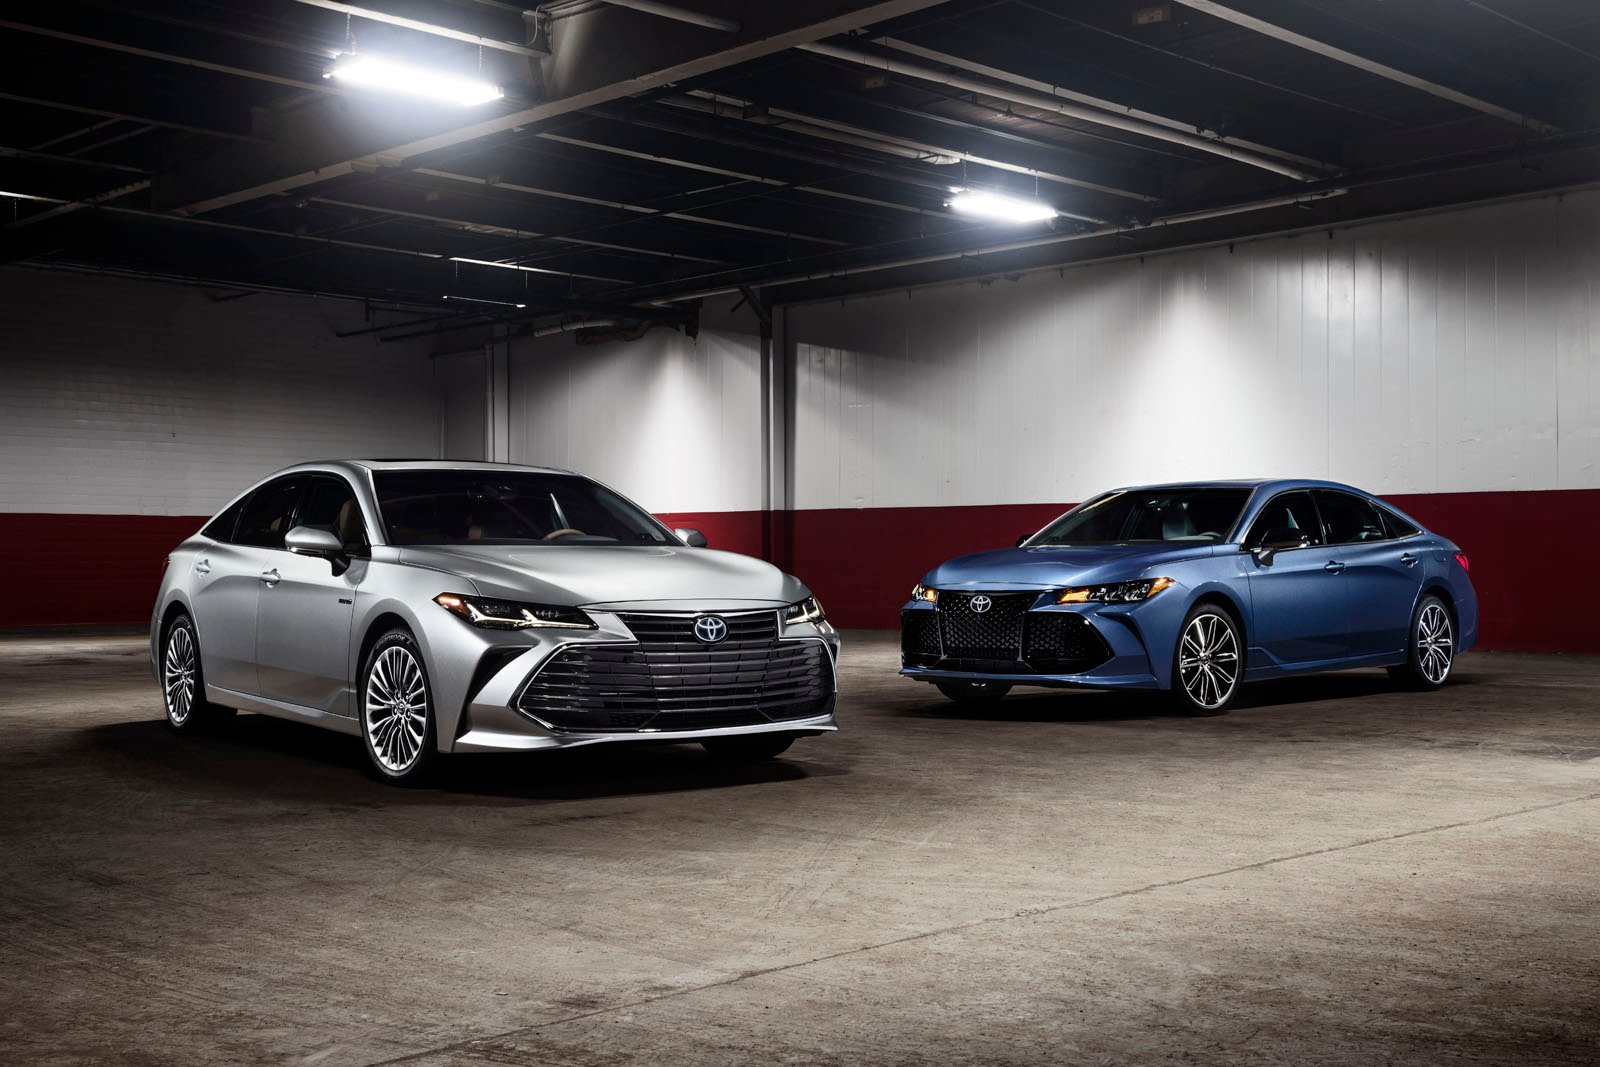 Brand New 2019 Toyota Avalon Debuts: 5 Things You Need to Know » AutoGuide.com News